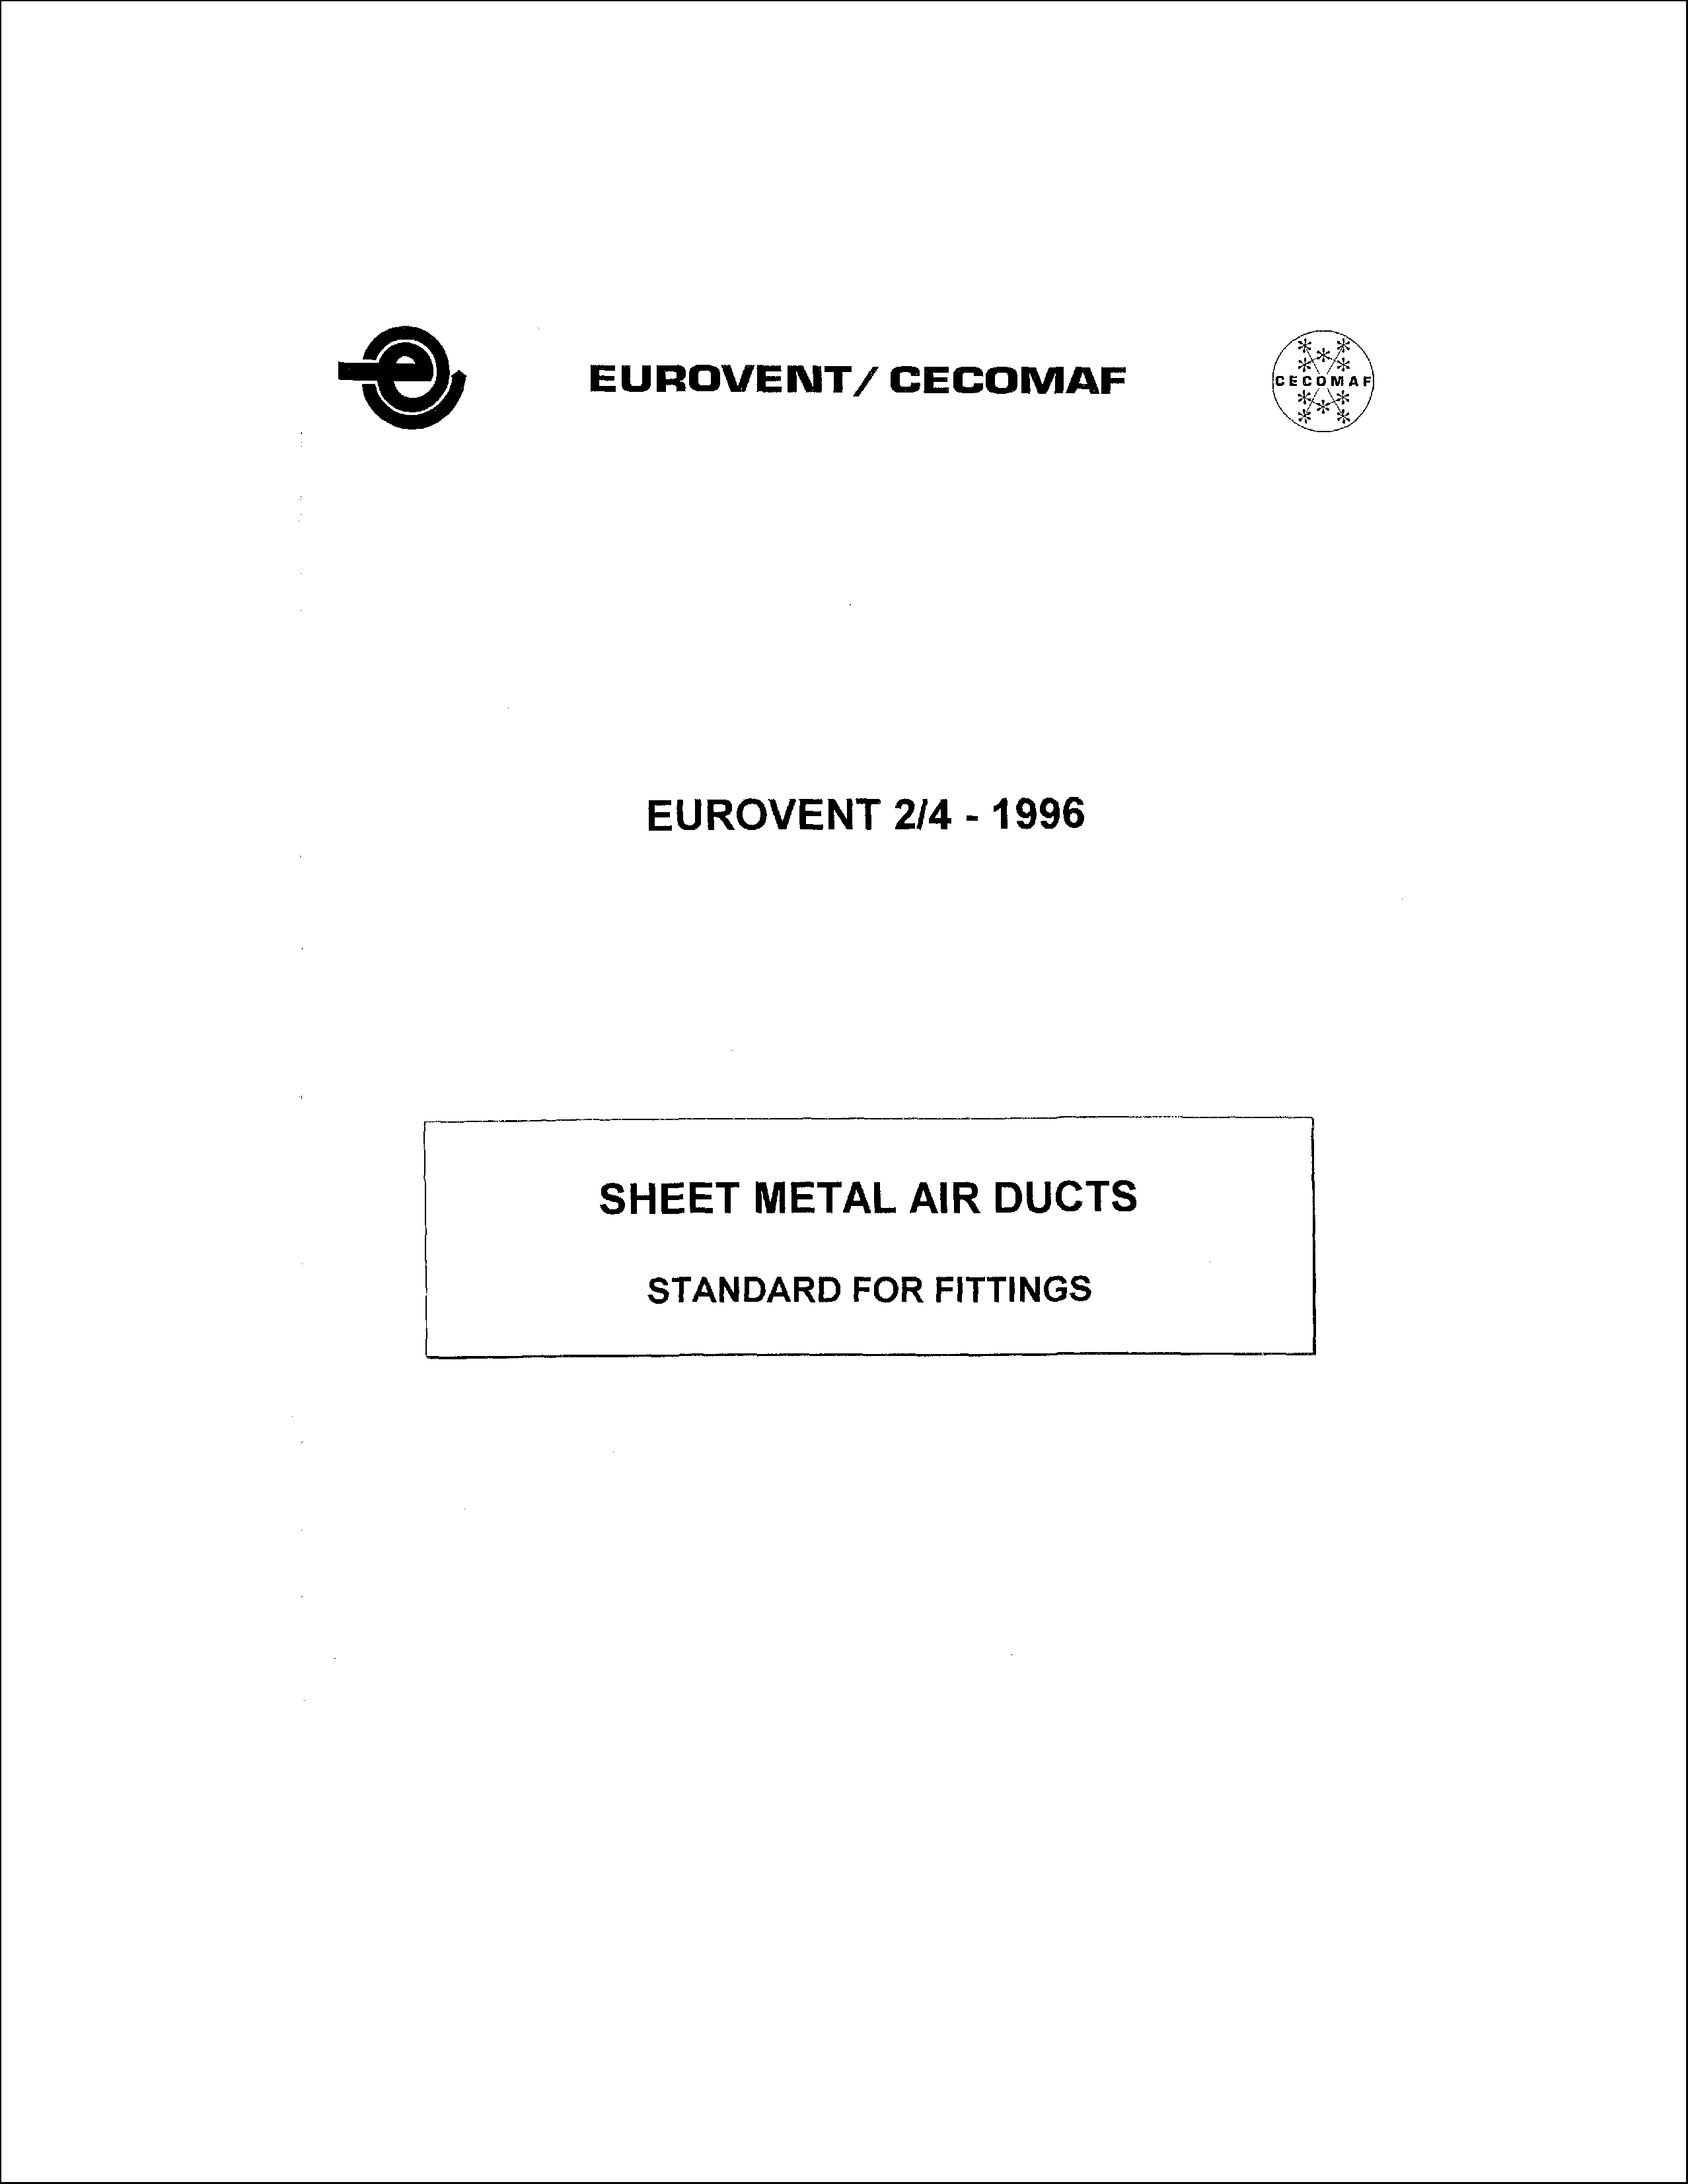 1996 - Sheet metal air ducts - standards for fitting